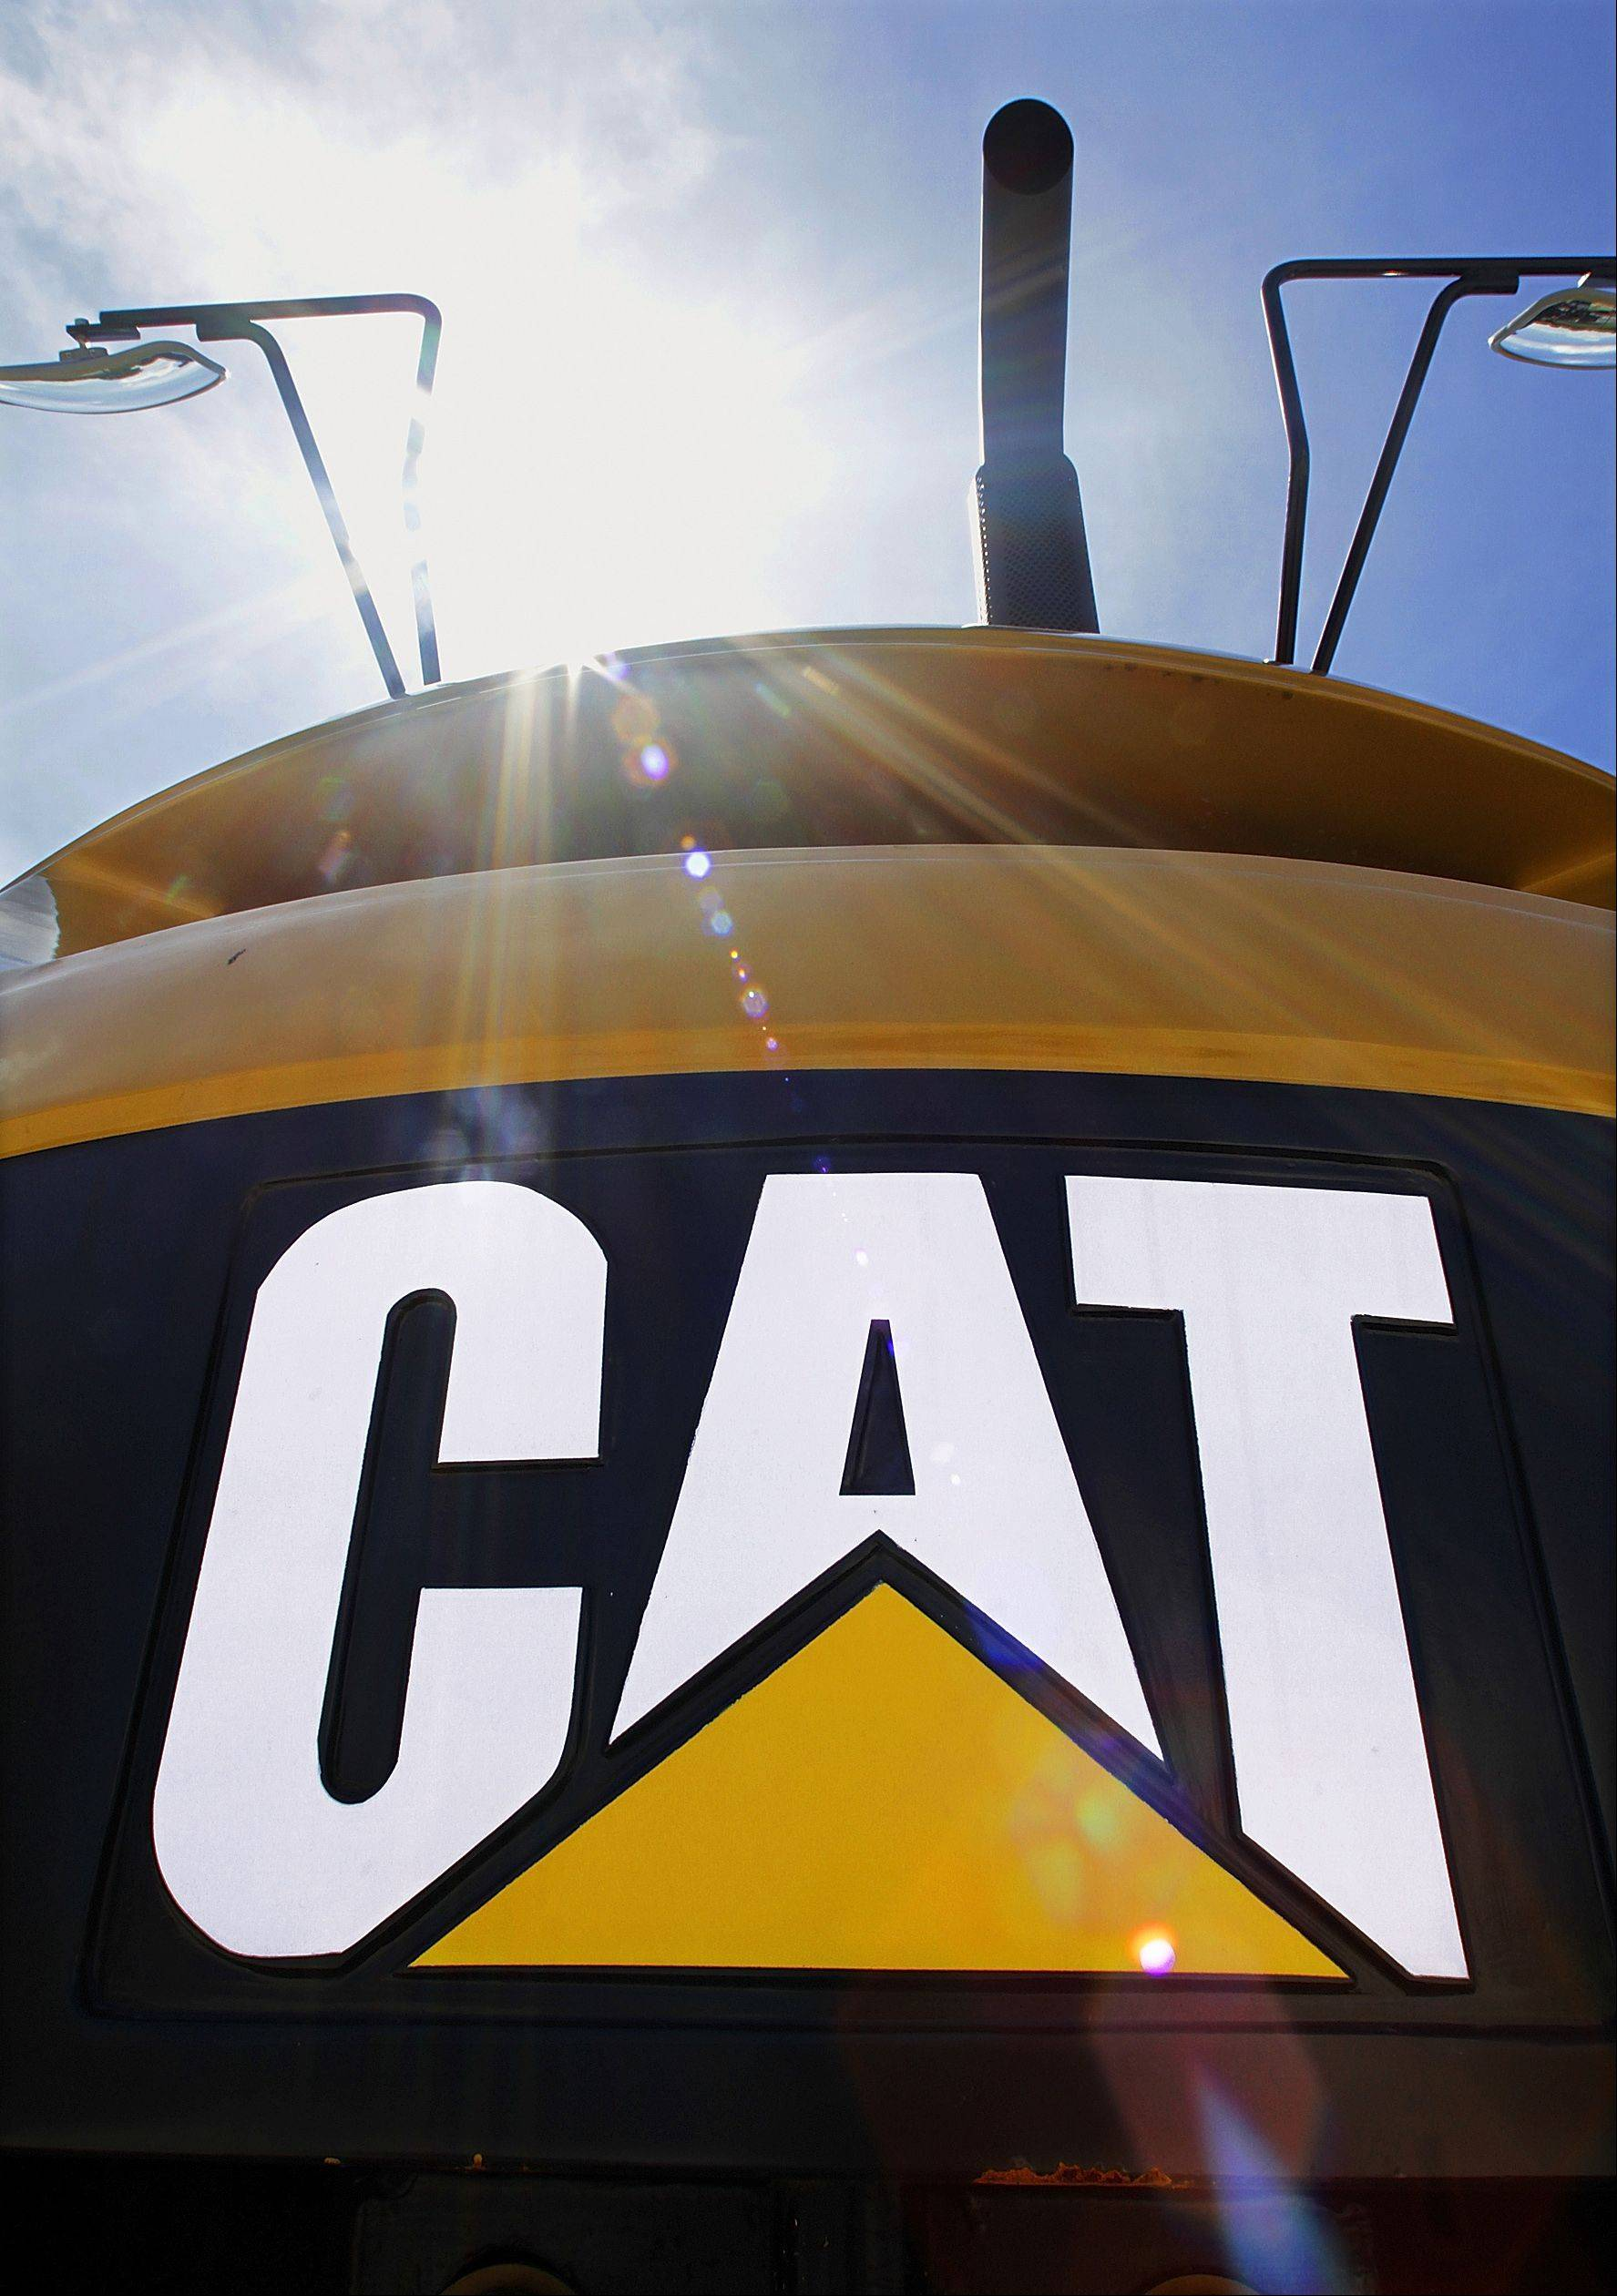 Caterpillar Inc., the world's largest maker of construction and mining equipment, had its obligations cut by $135 million as part of a settlement reached relating to its purchase of ERA Mining Machinery Ltd.